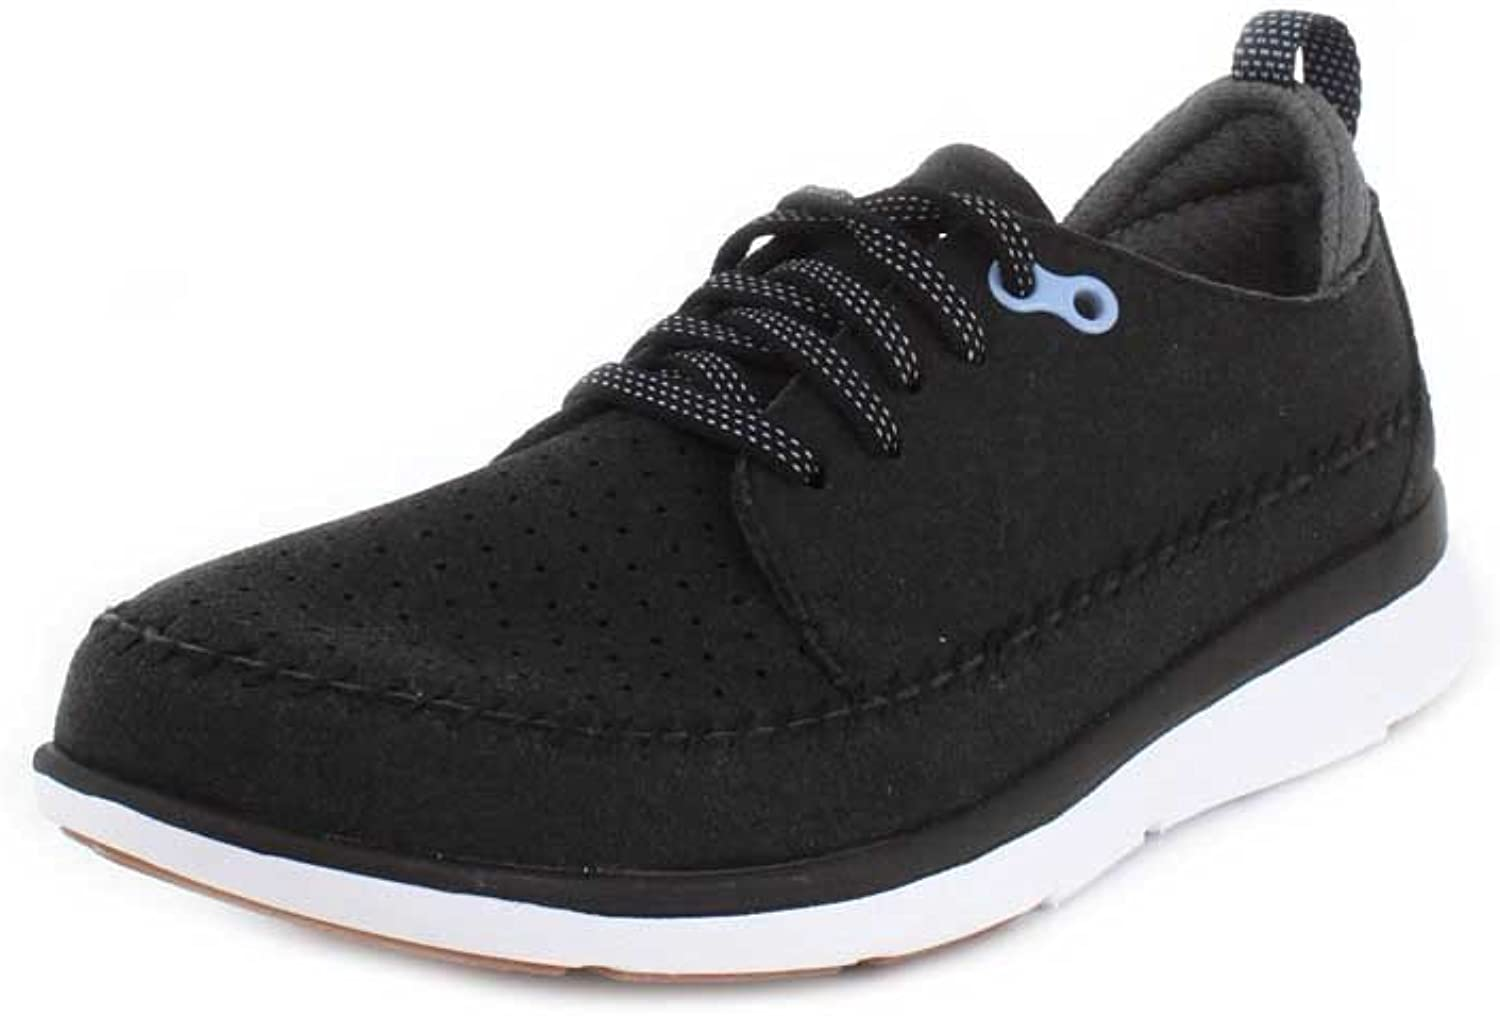 Superfeet Addy Women's Crafted Sport shoes Black White